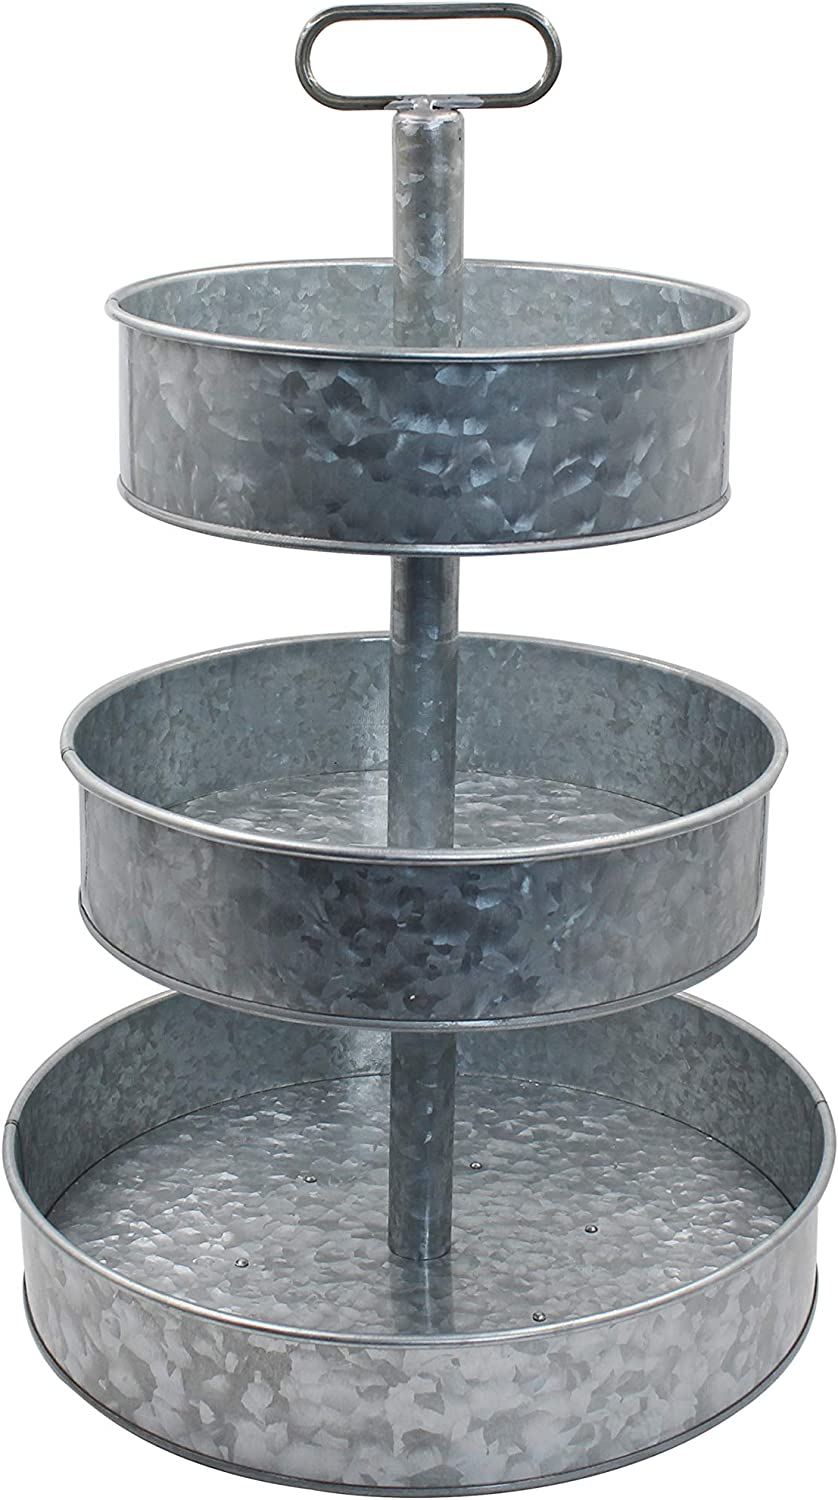 3 Tier Galvanized Metal Stand Serving Tray with Handle - Farmhouse Style - Jumbo Serving Tray & Display Perfect for Rustic, Vintage Decoration in Kitchen & Dining Room